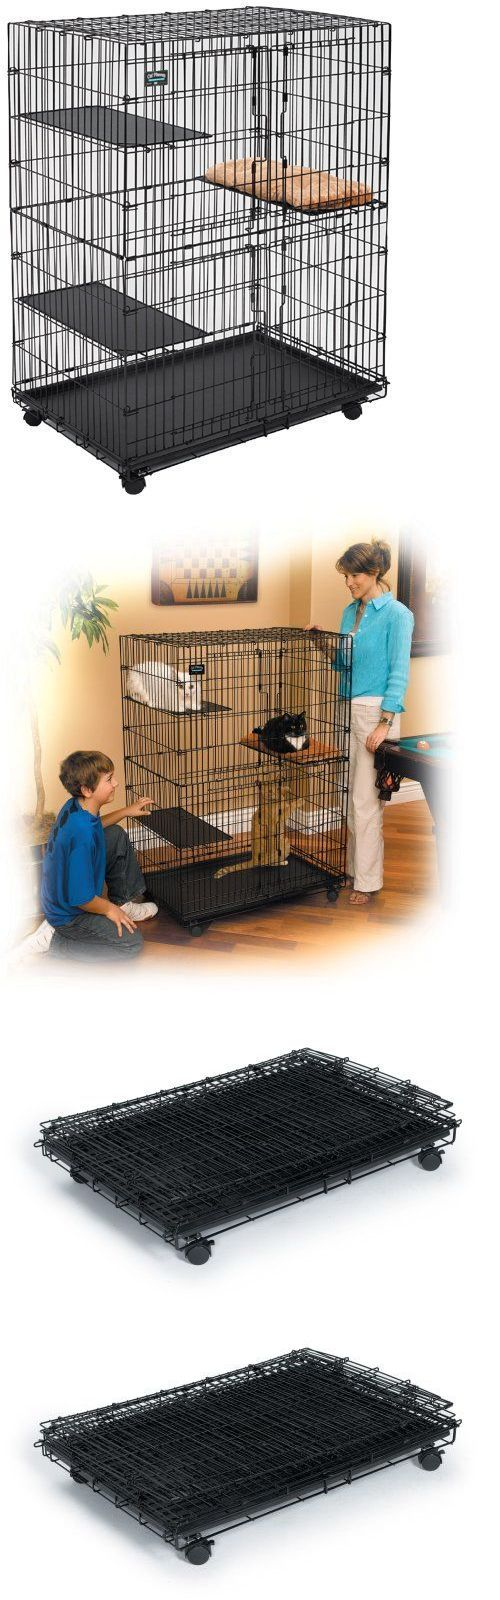 48 Dog Crate | Midwest Dog Crates | Crates for Small Dogs